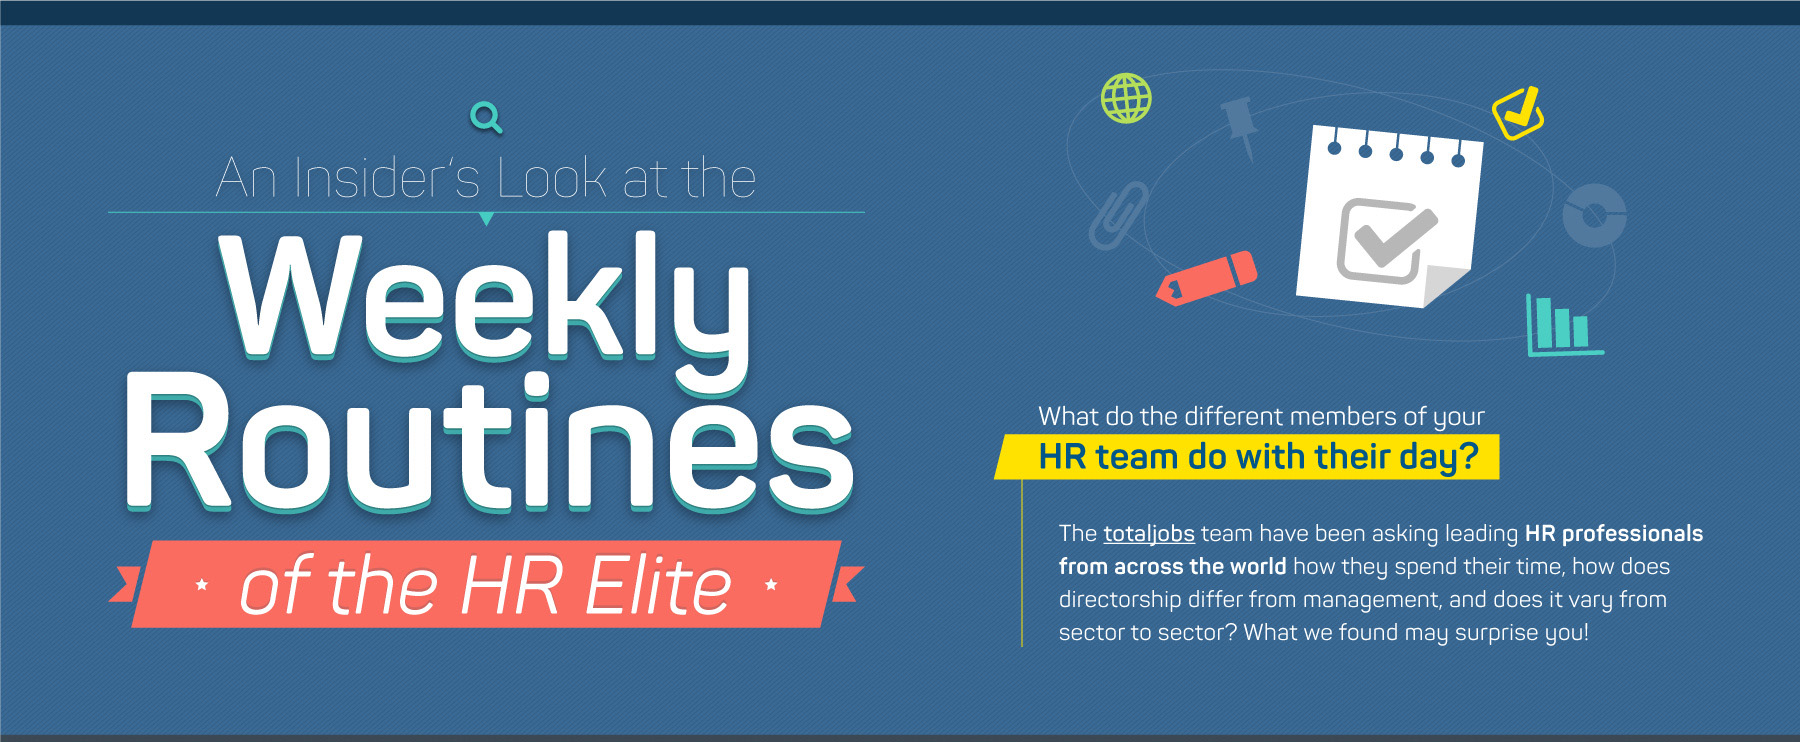 Infographic: Weekly routines of the workplace elite